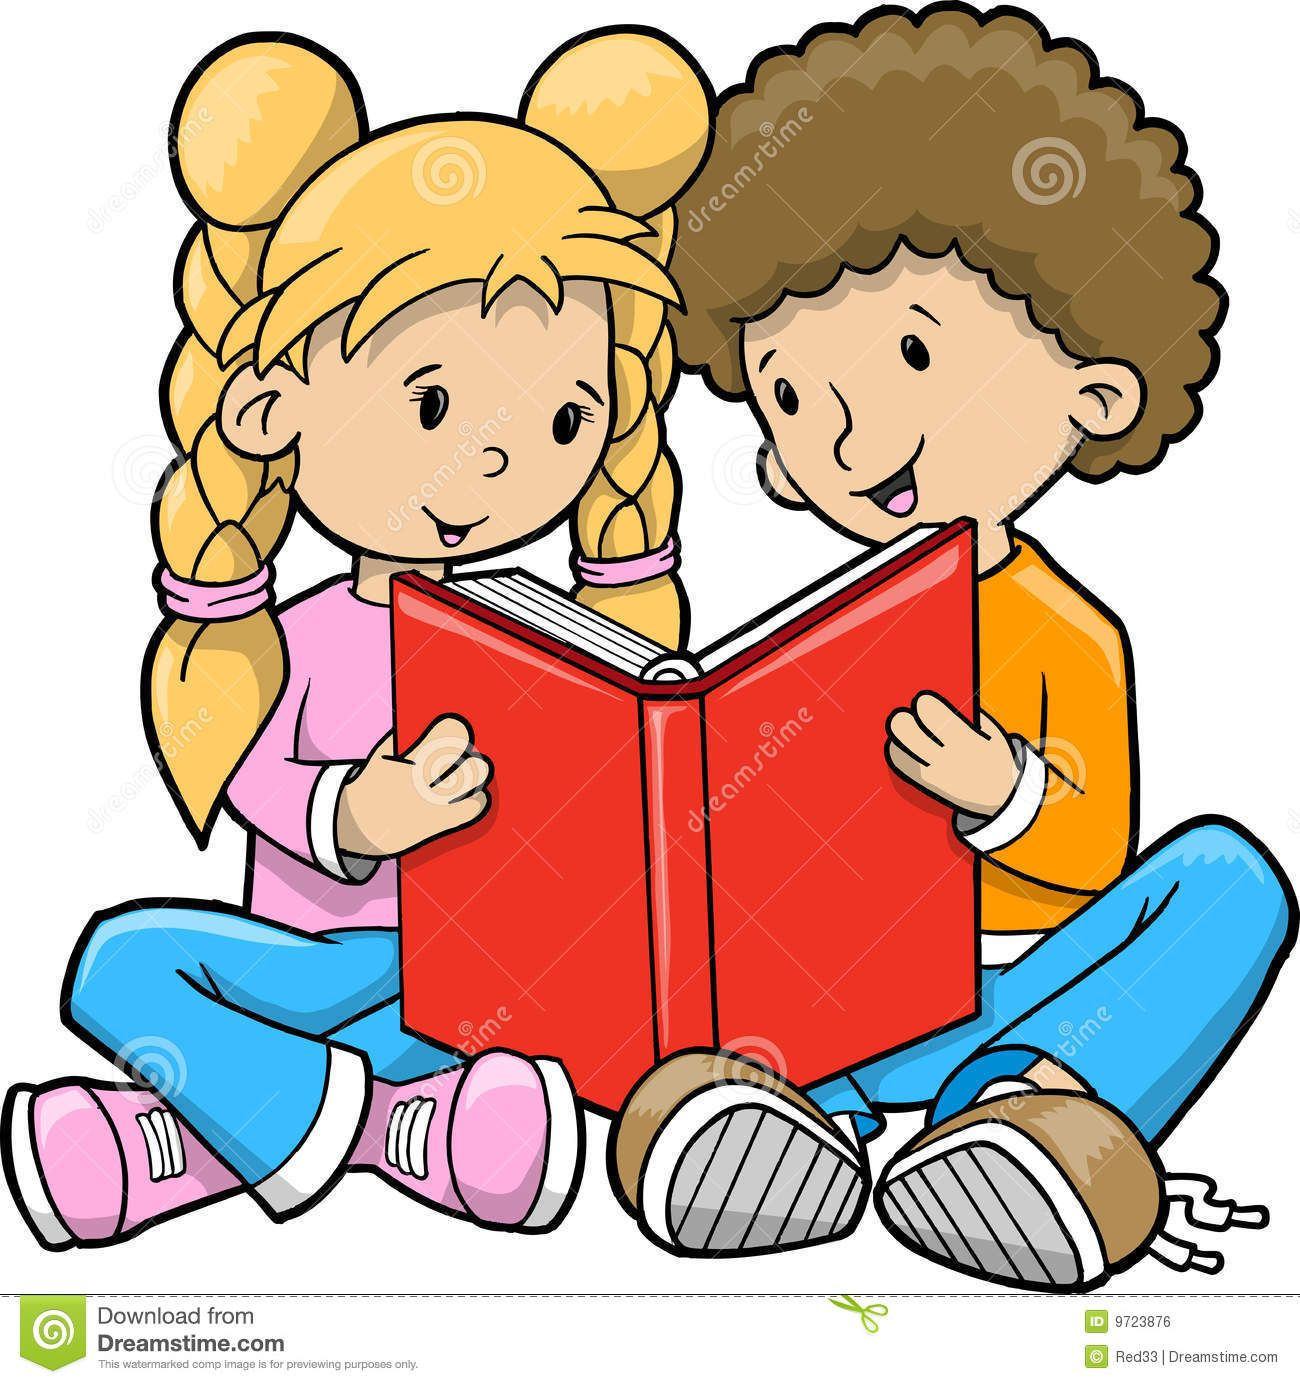 i pinimg com originals 29 2c b5 292cb5dc0157b65174 rh pinterest co uk Reading to Each Other Reading to Each Other